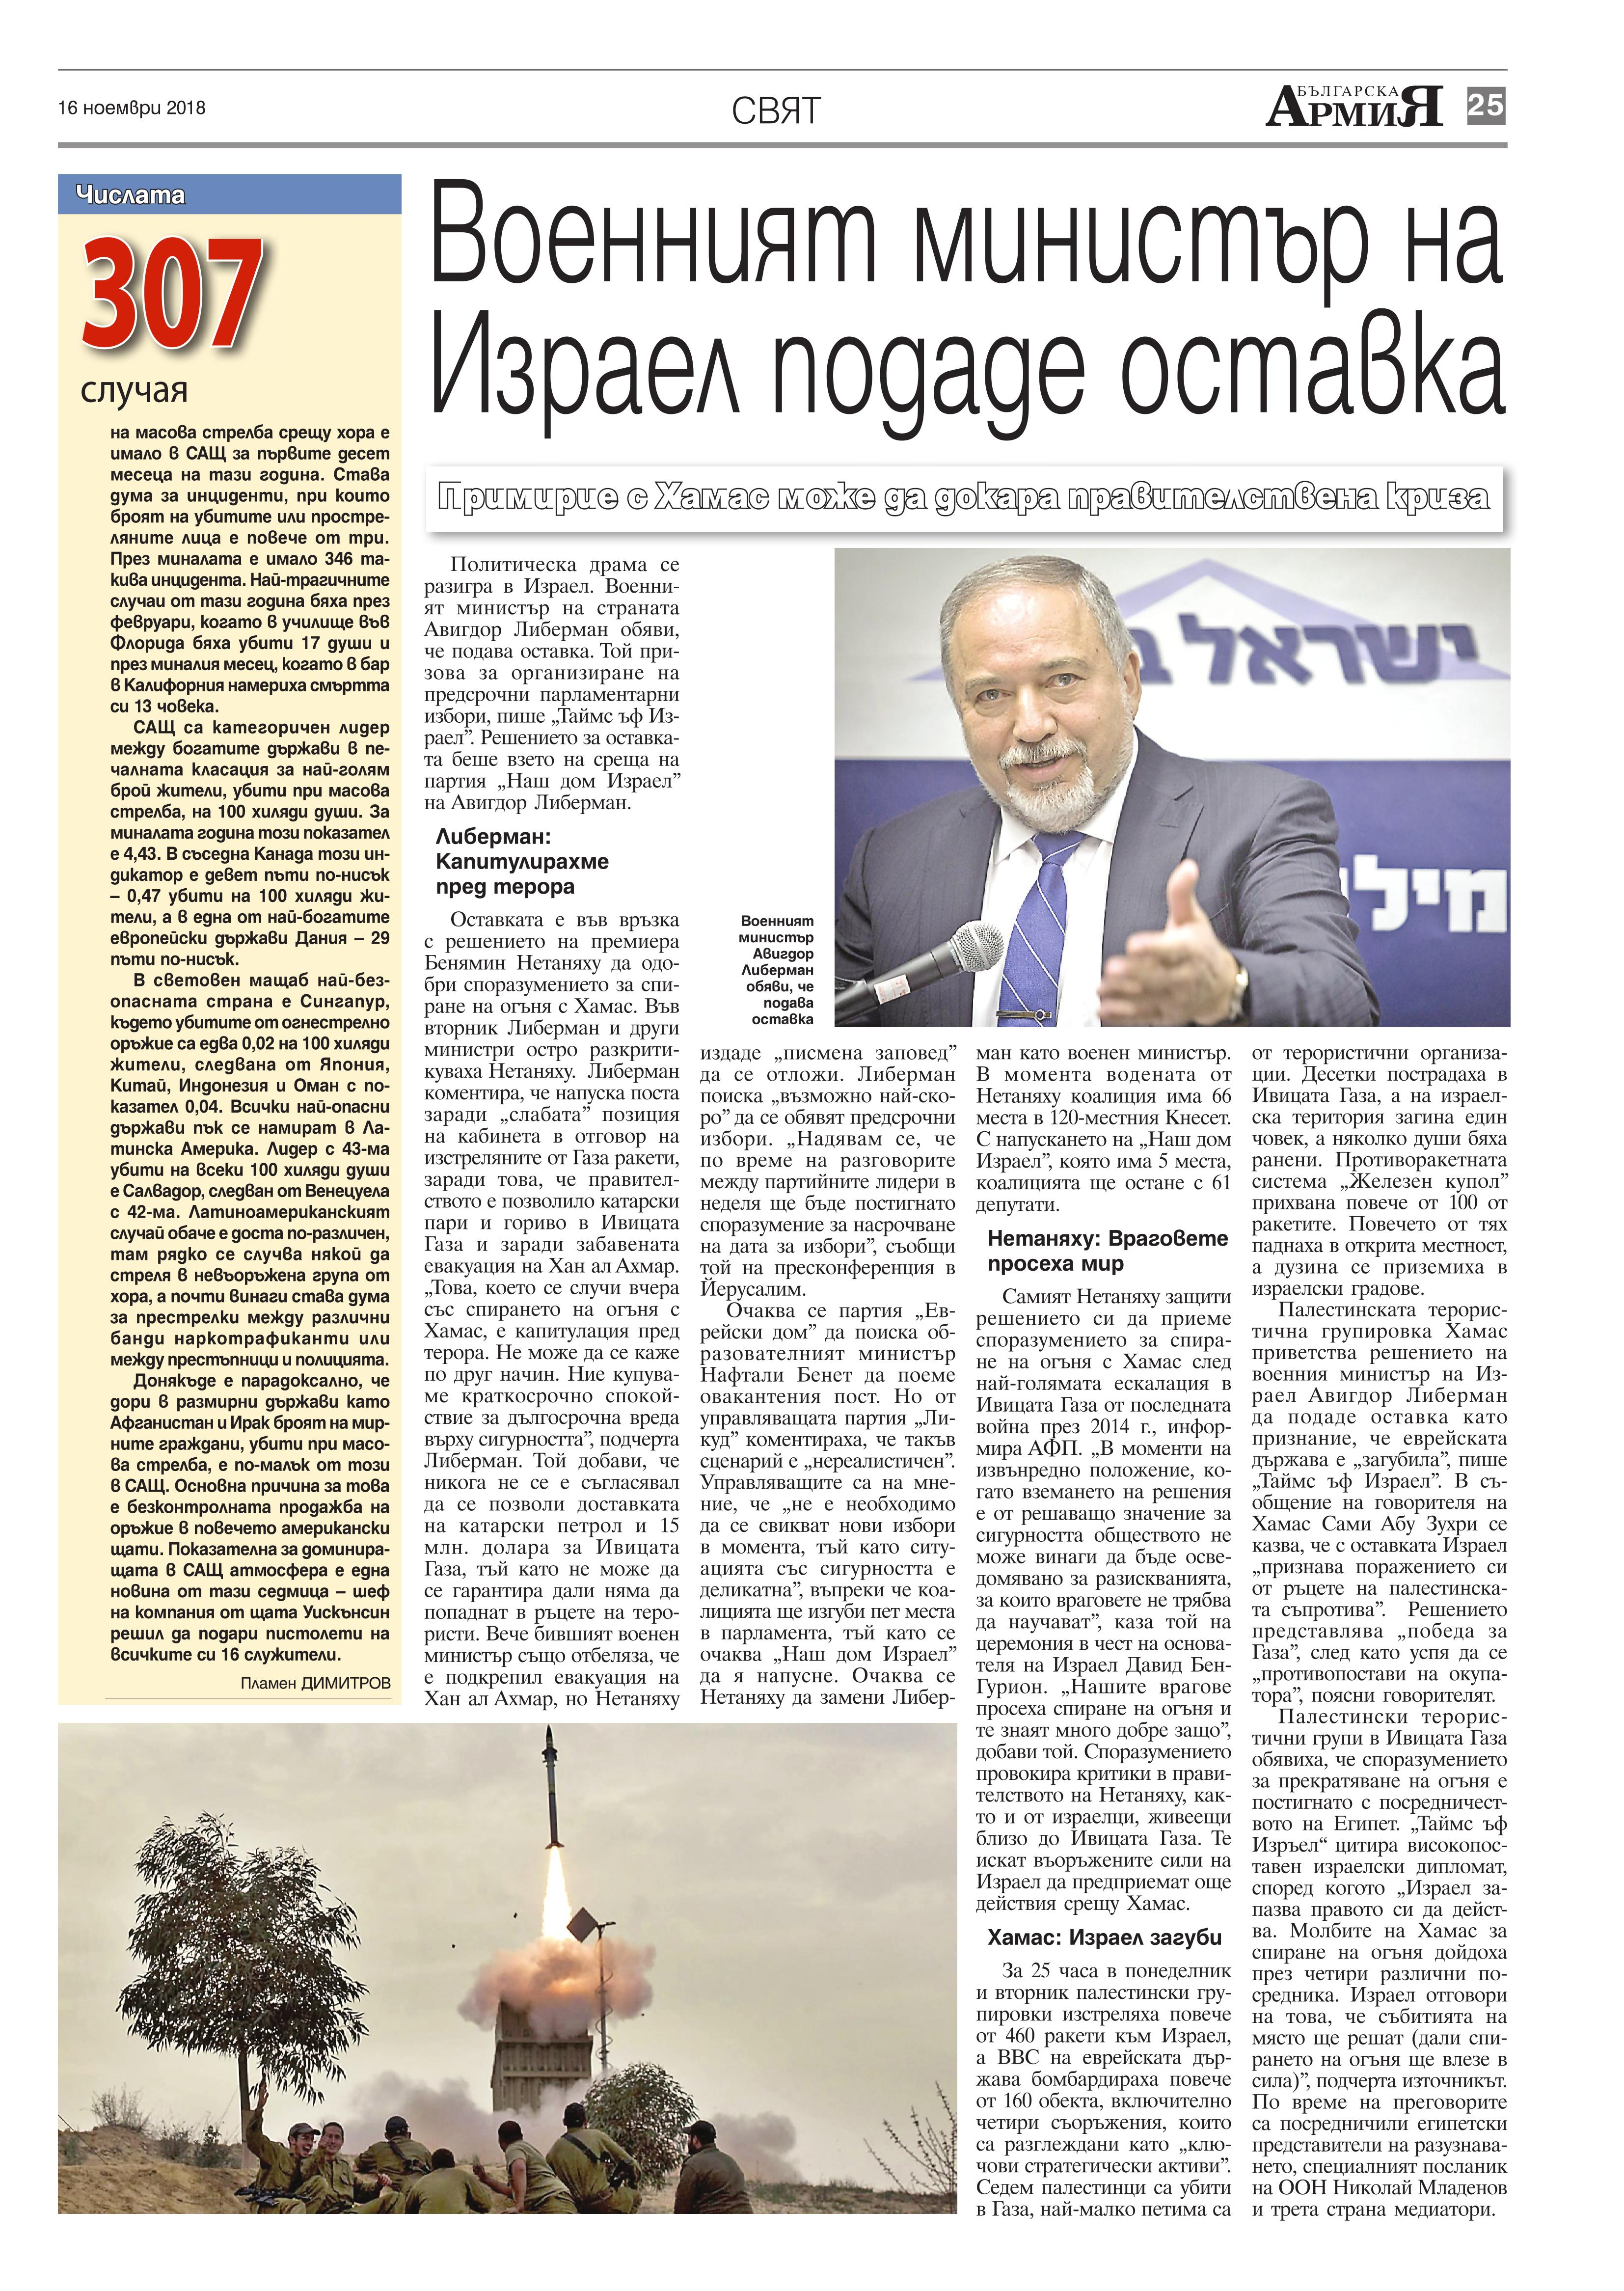 https://armymedia.bg/wp-content/uploads/2015/06/25.page1_-61.jpg